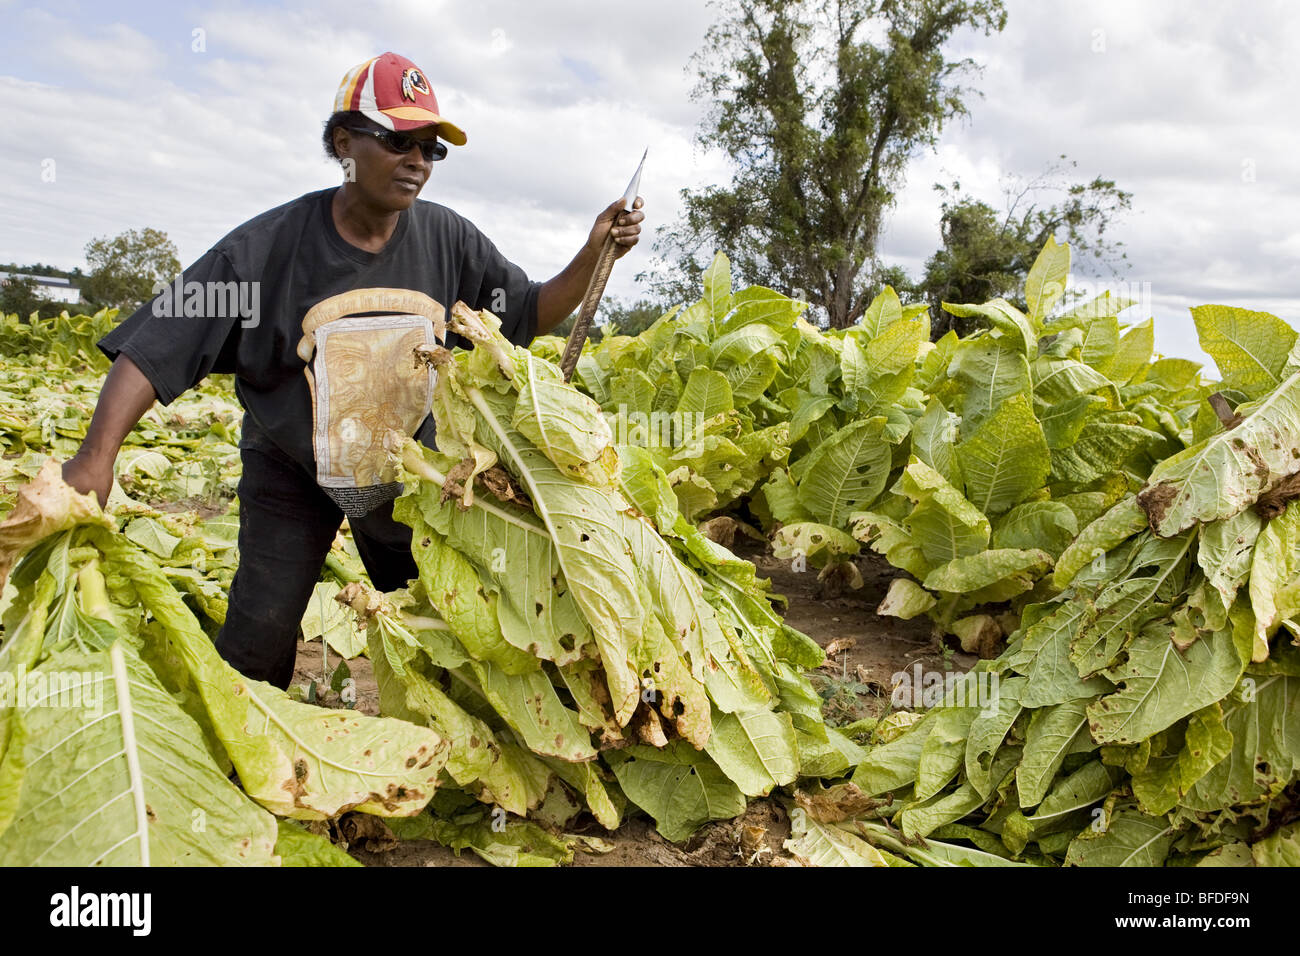 Woman harvesting tobacco. - Stock Image